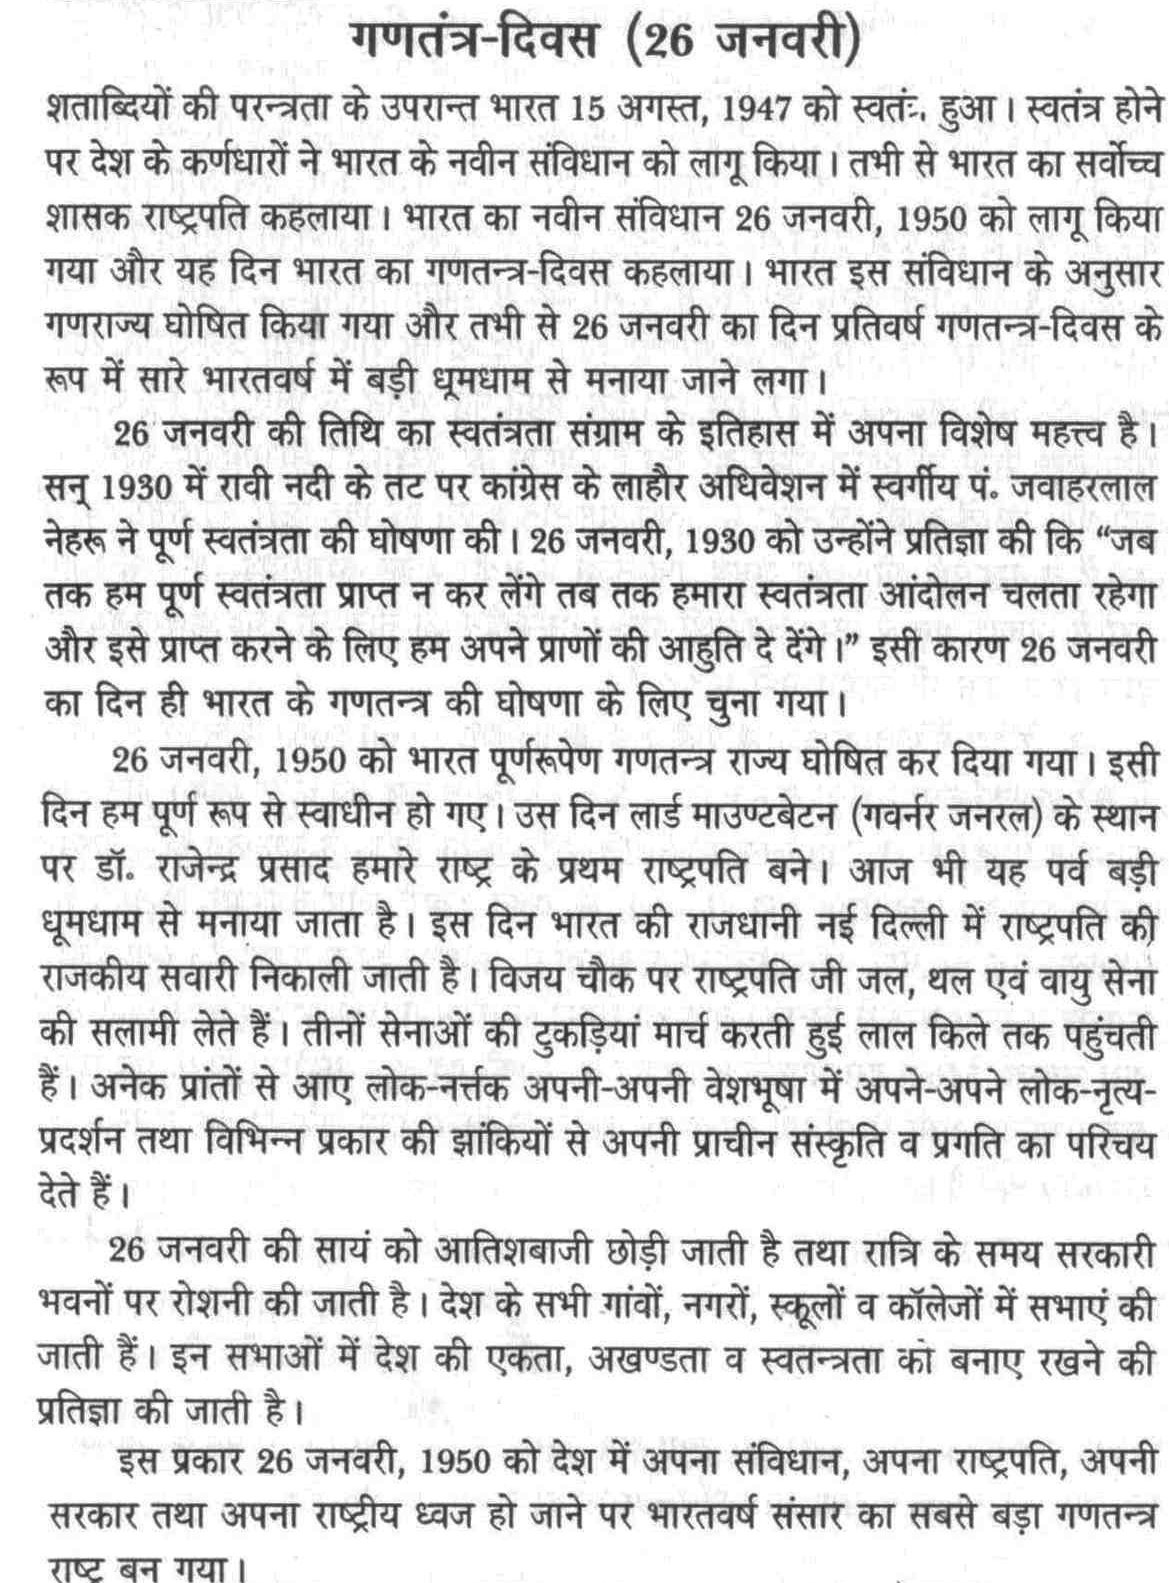 essay 26 january Thesis basic dharti maa essay on 26 january 26 january 7, 2014 gantantar diwas  ki hardik shubh kamnayein hd ठक ह द hindi ठक ह द hindi p.